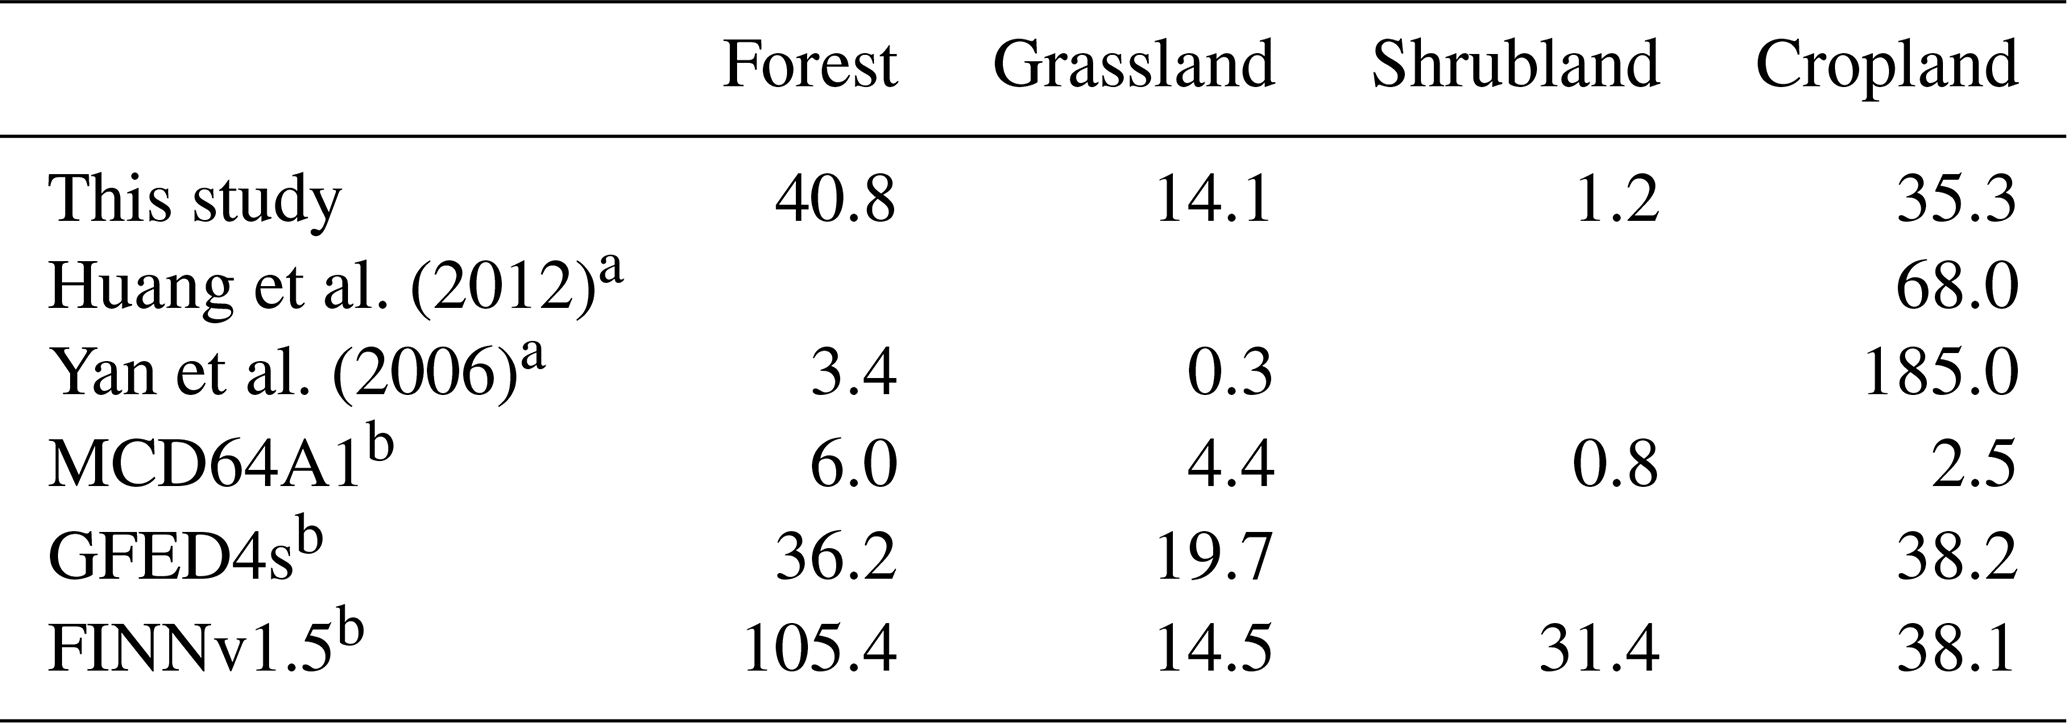 BG - Estimation of emissions from biomass burning in China